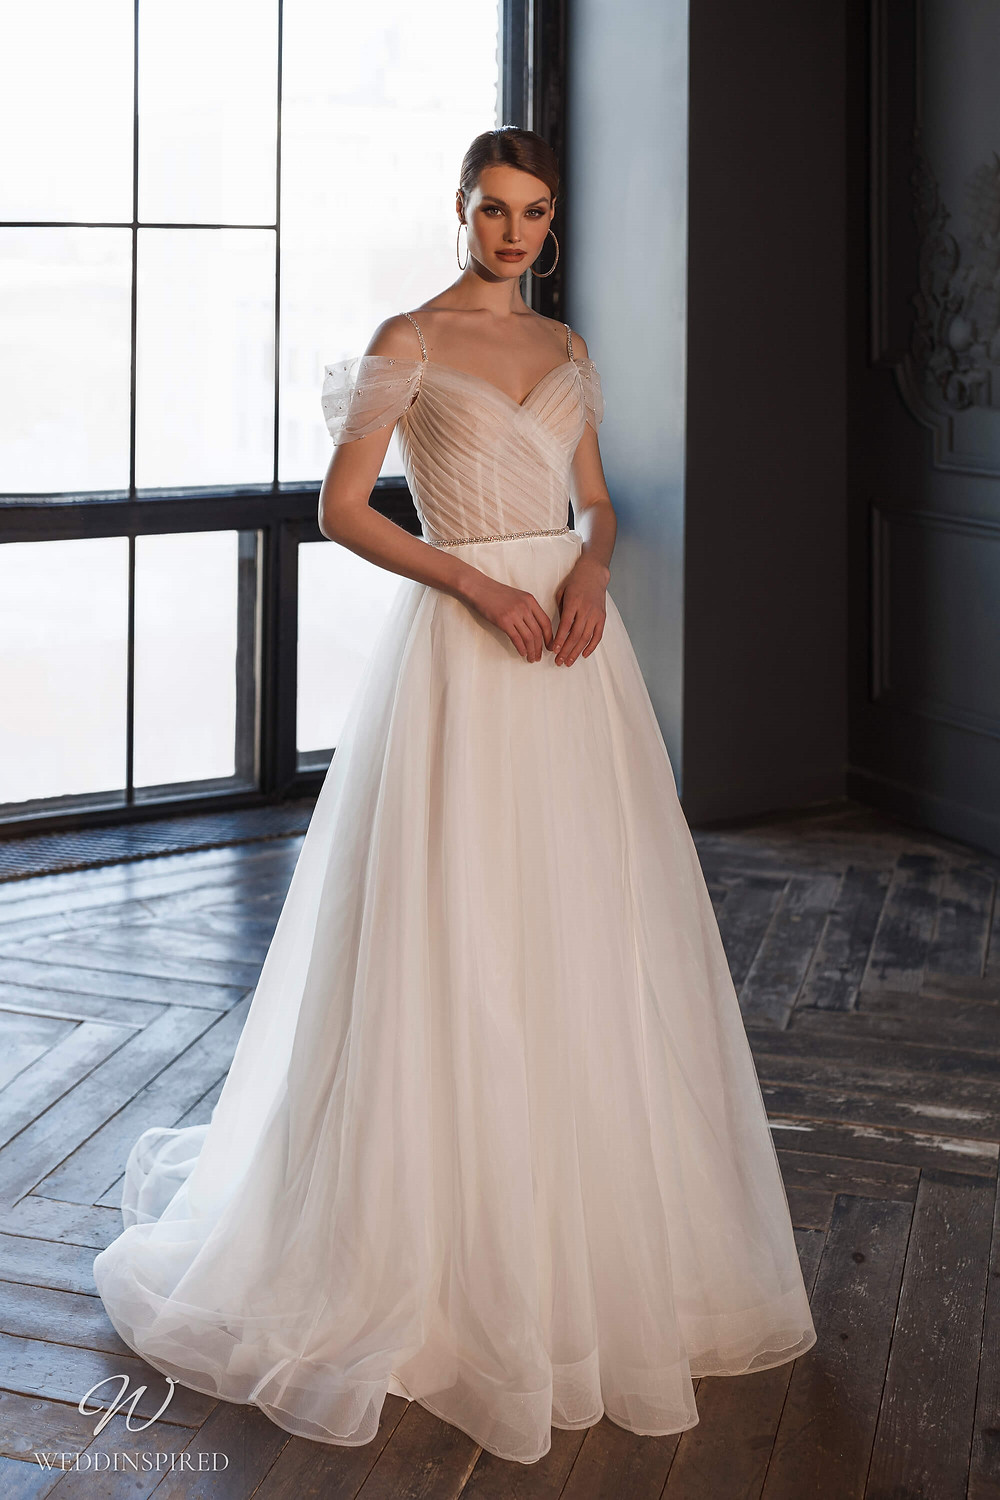 A Naviblue Bridal 2021 blush off the shoulder tulle A-line wedding dress